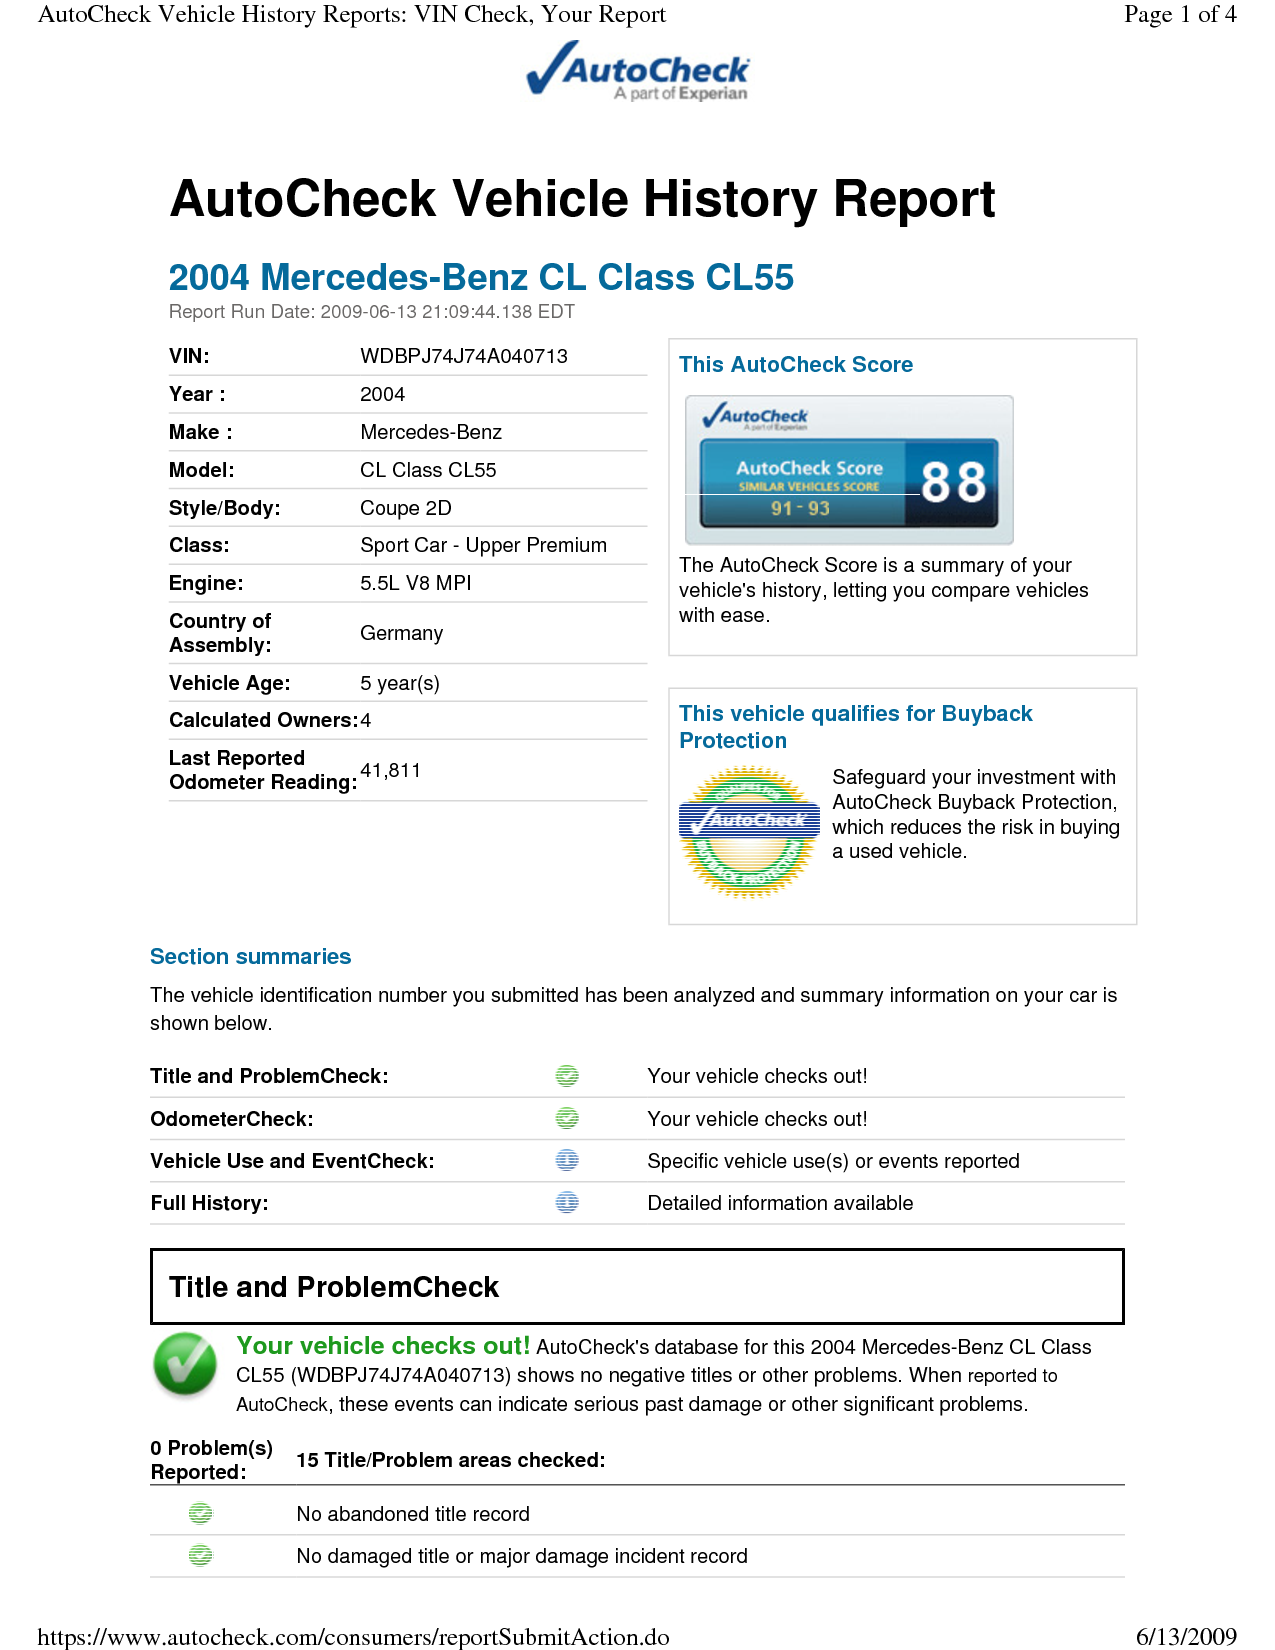 Unlimited Carfax Reports by Vin Inspirational Carfax Vs Autocheck Reports What You Don T Know